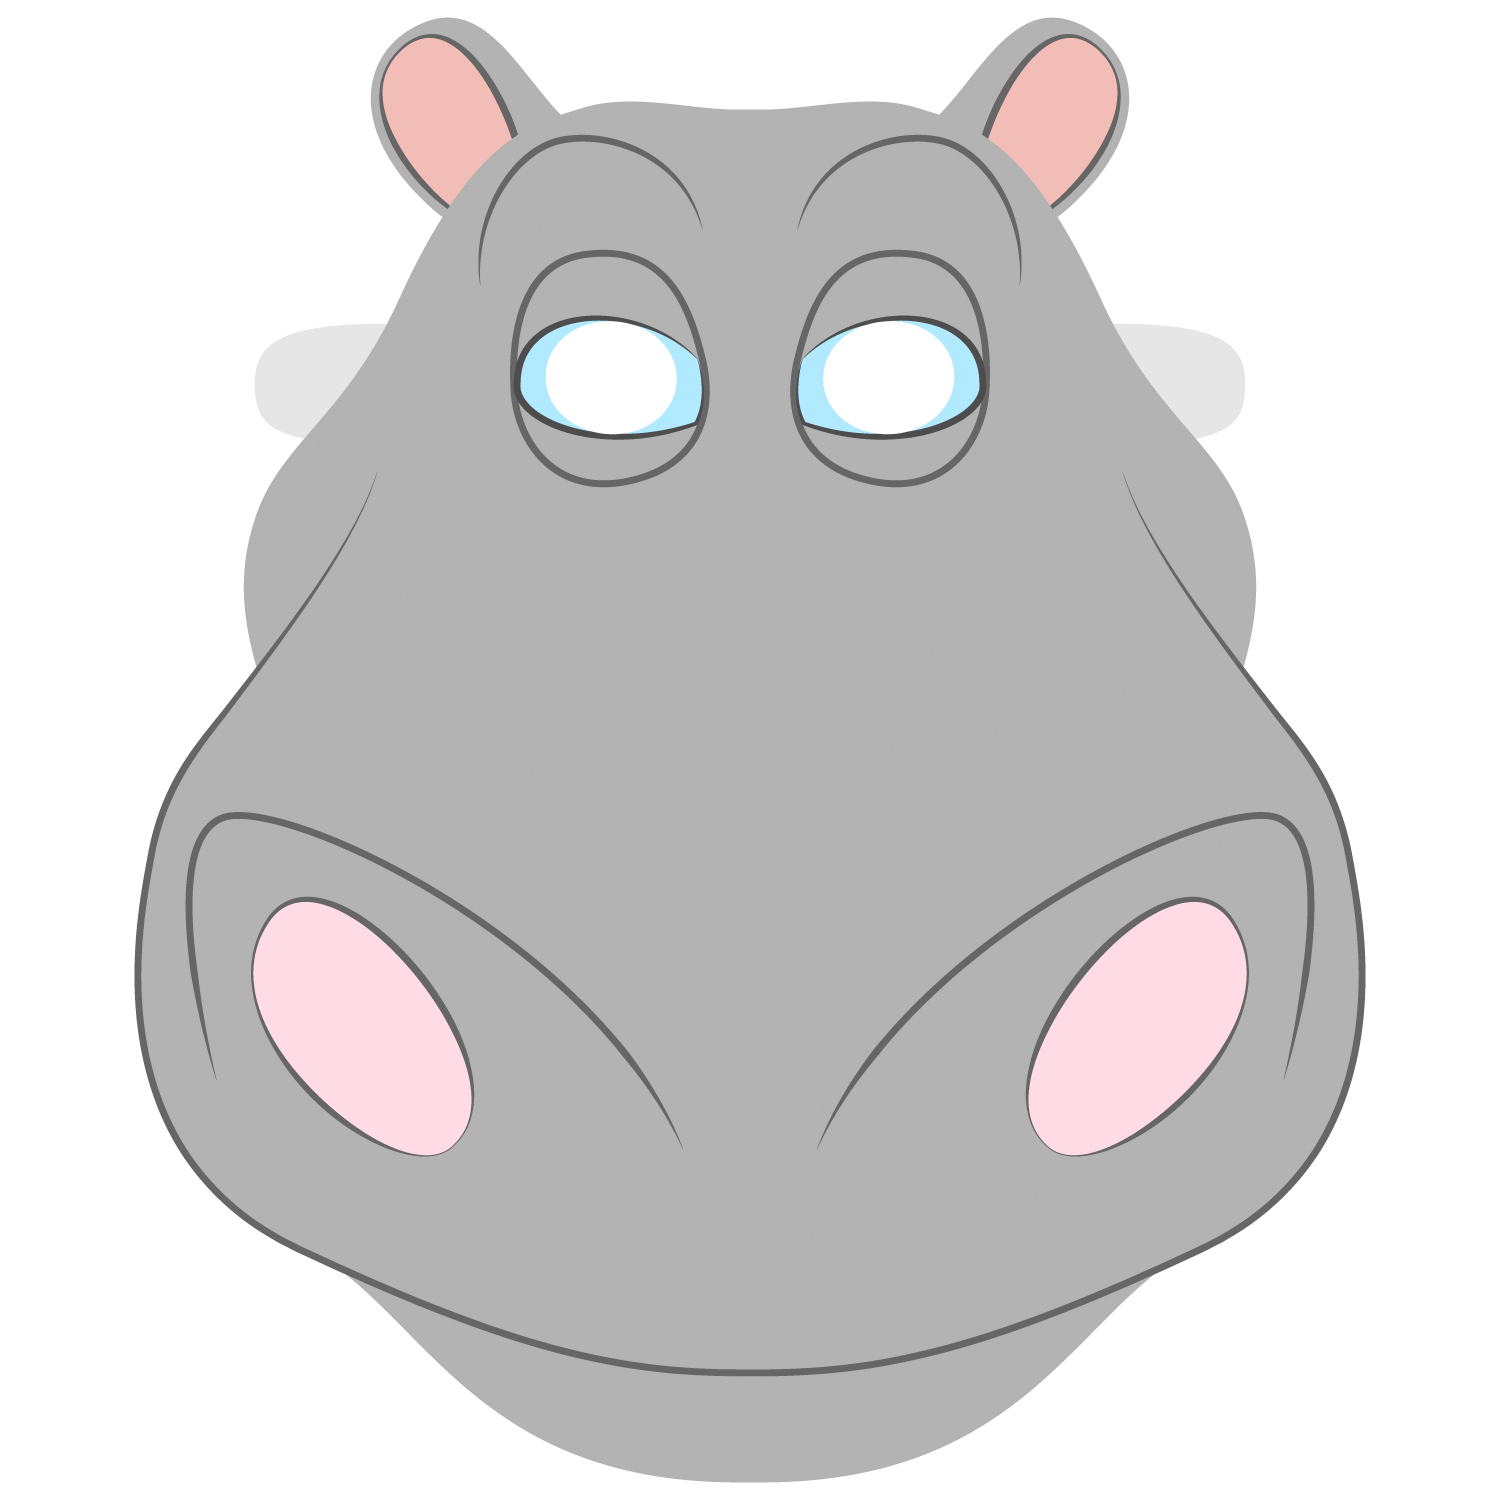 Hippo Mask Template   Free Printable Papercraft Templates - Free Printable Hippo Mask